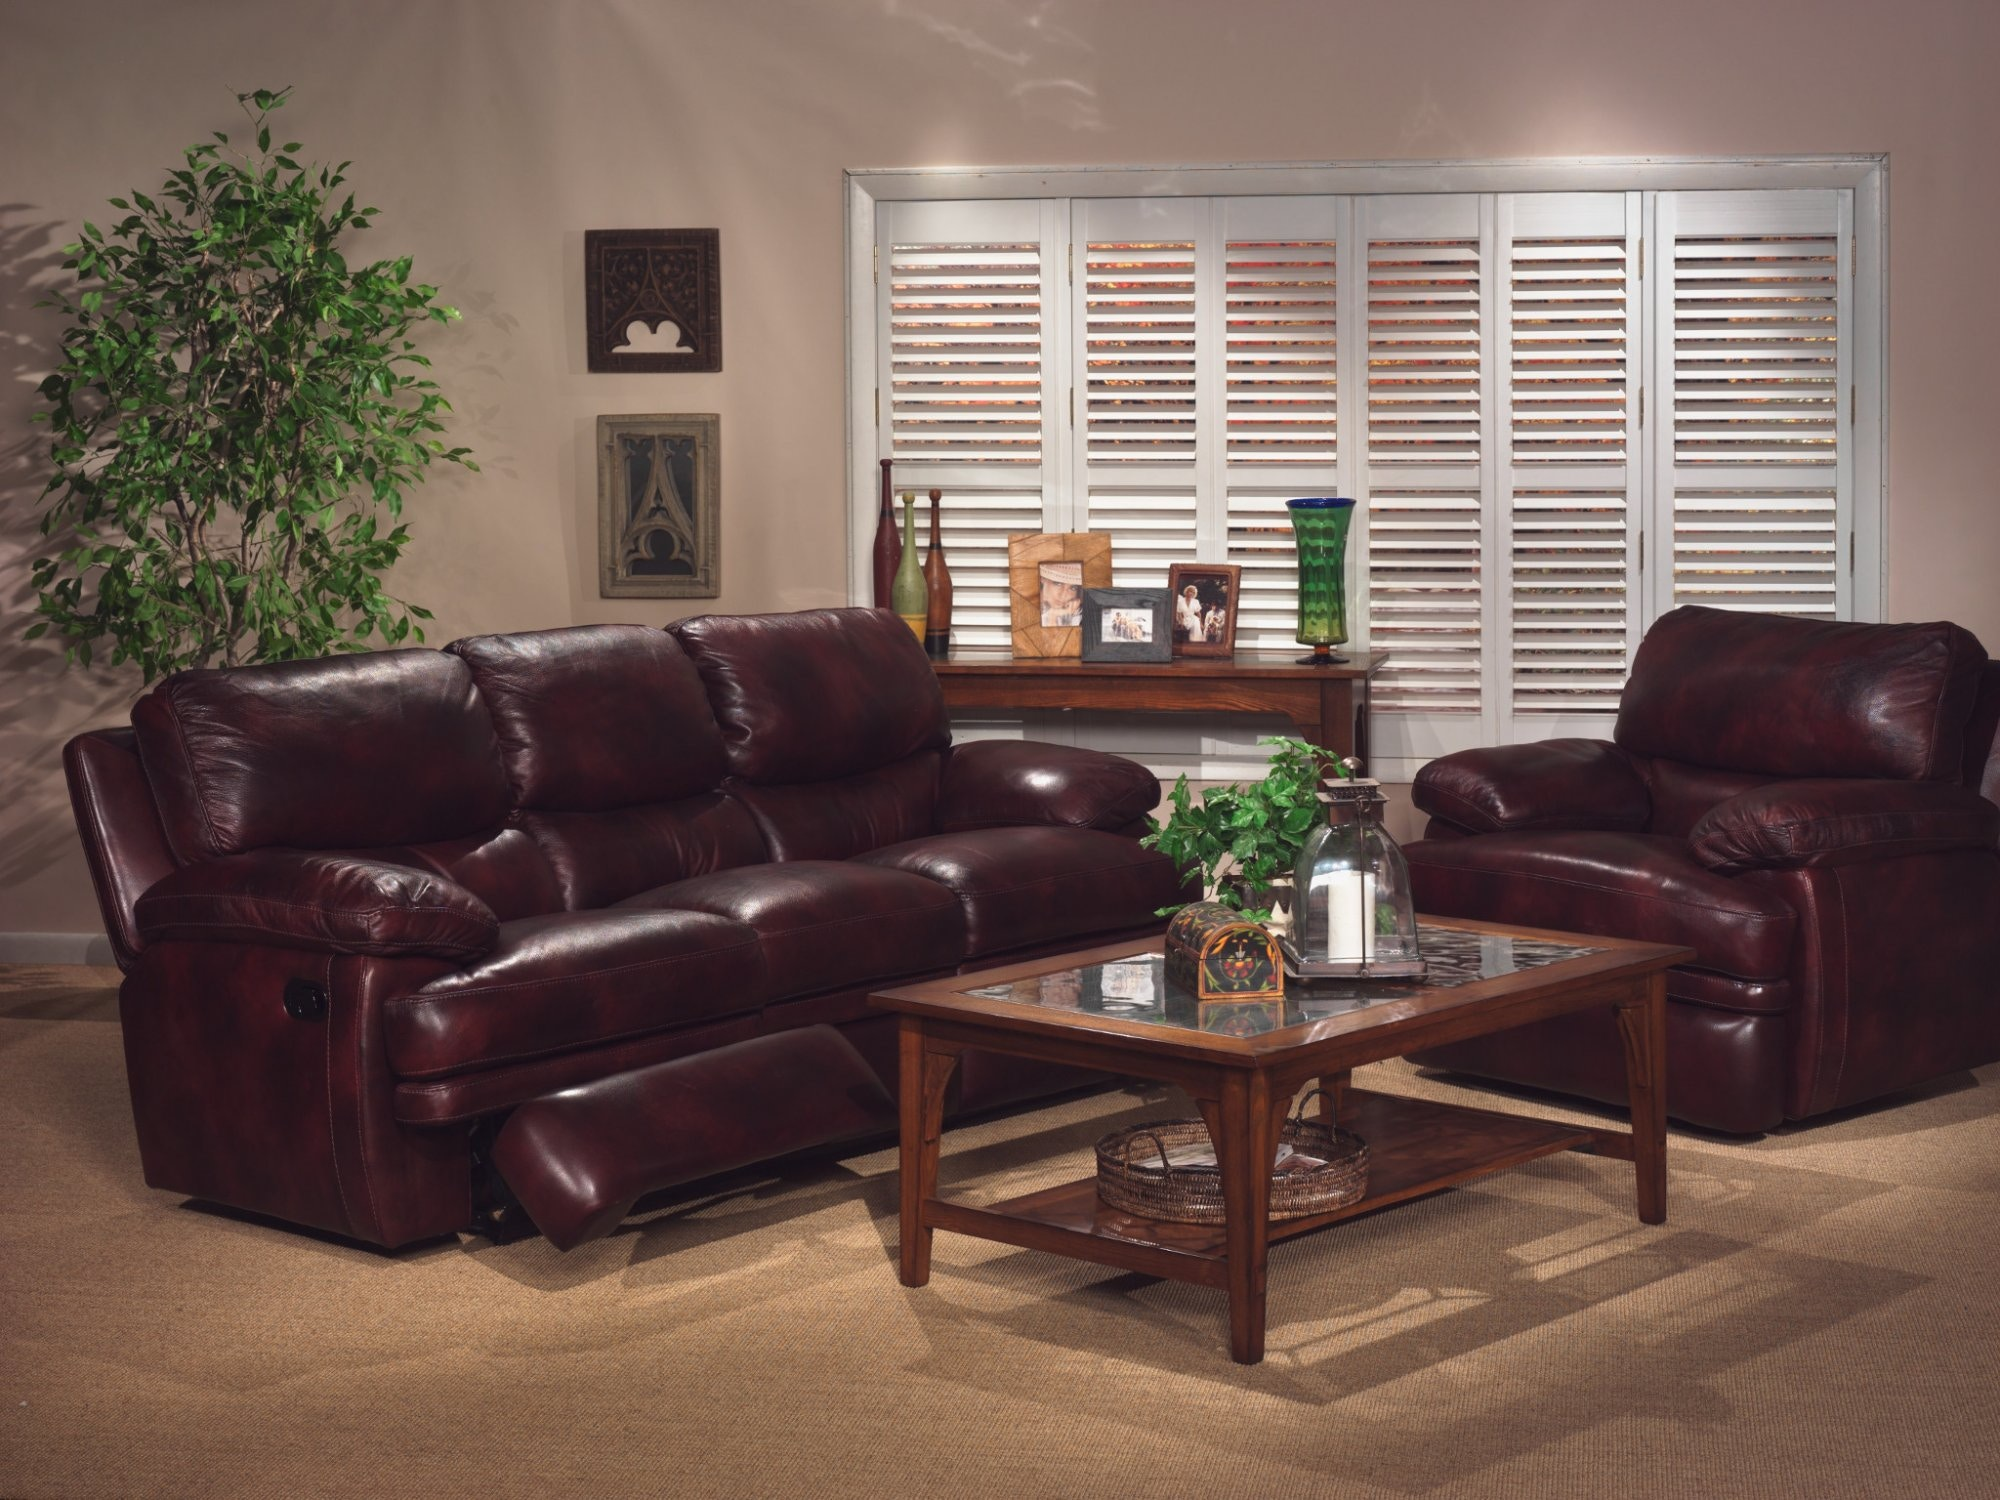 Living Room Furniture Orlando Fl living room sofas - slone brothers - longwood and orlando, fl